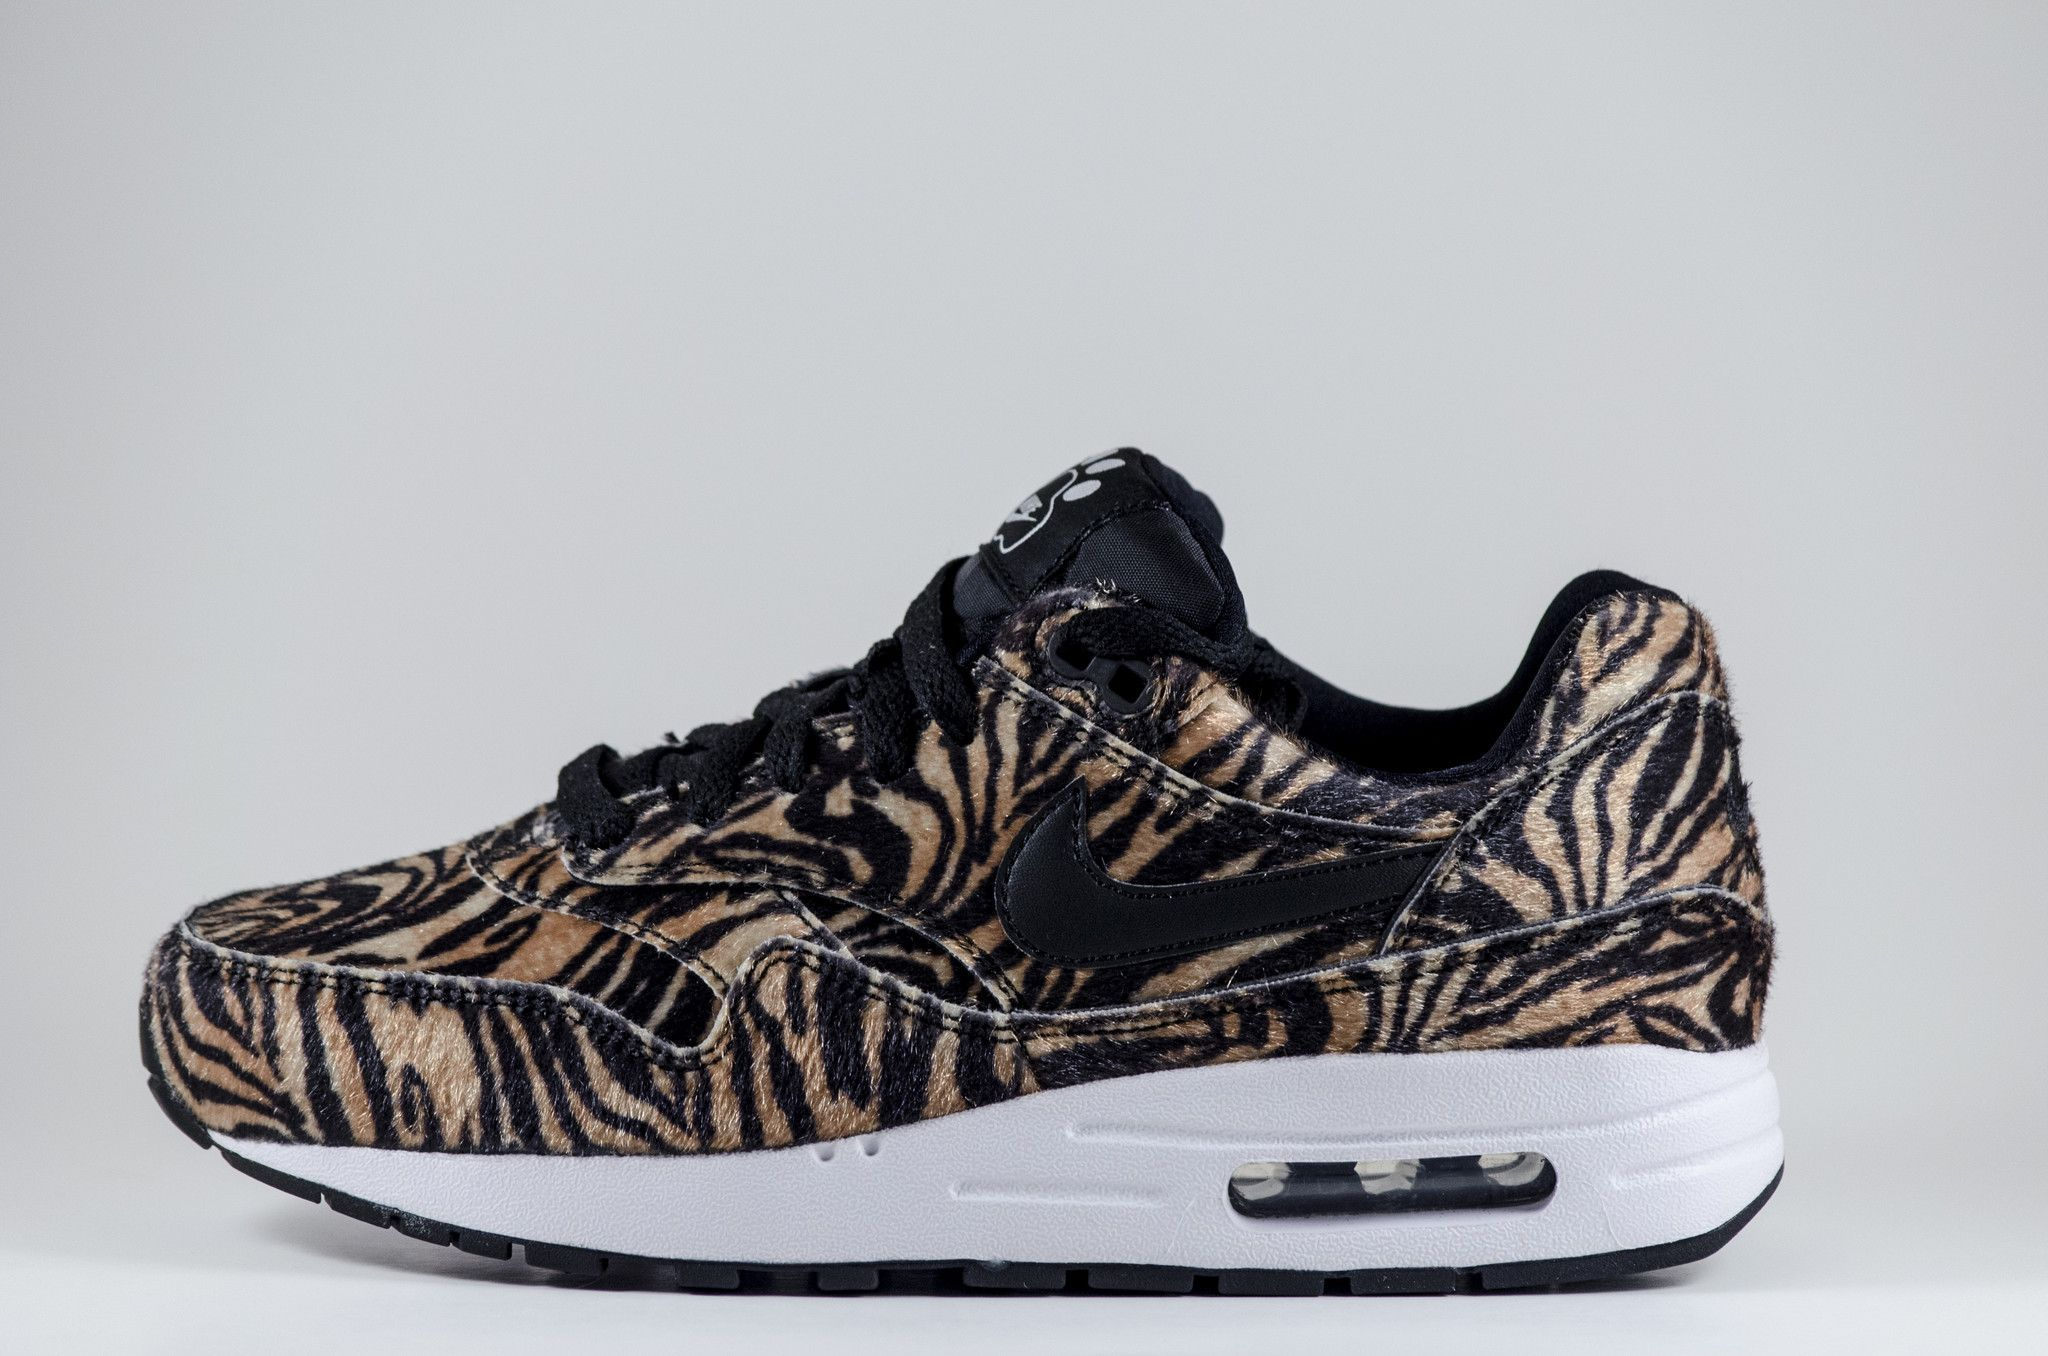 nike air max 1 qs products for sale | eBay